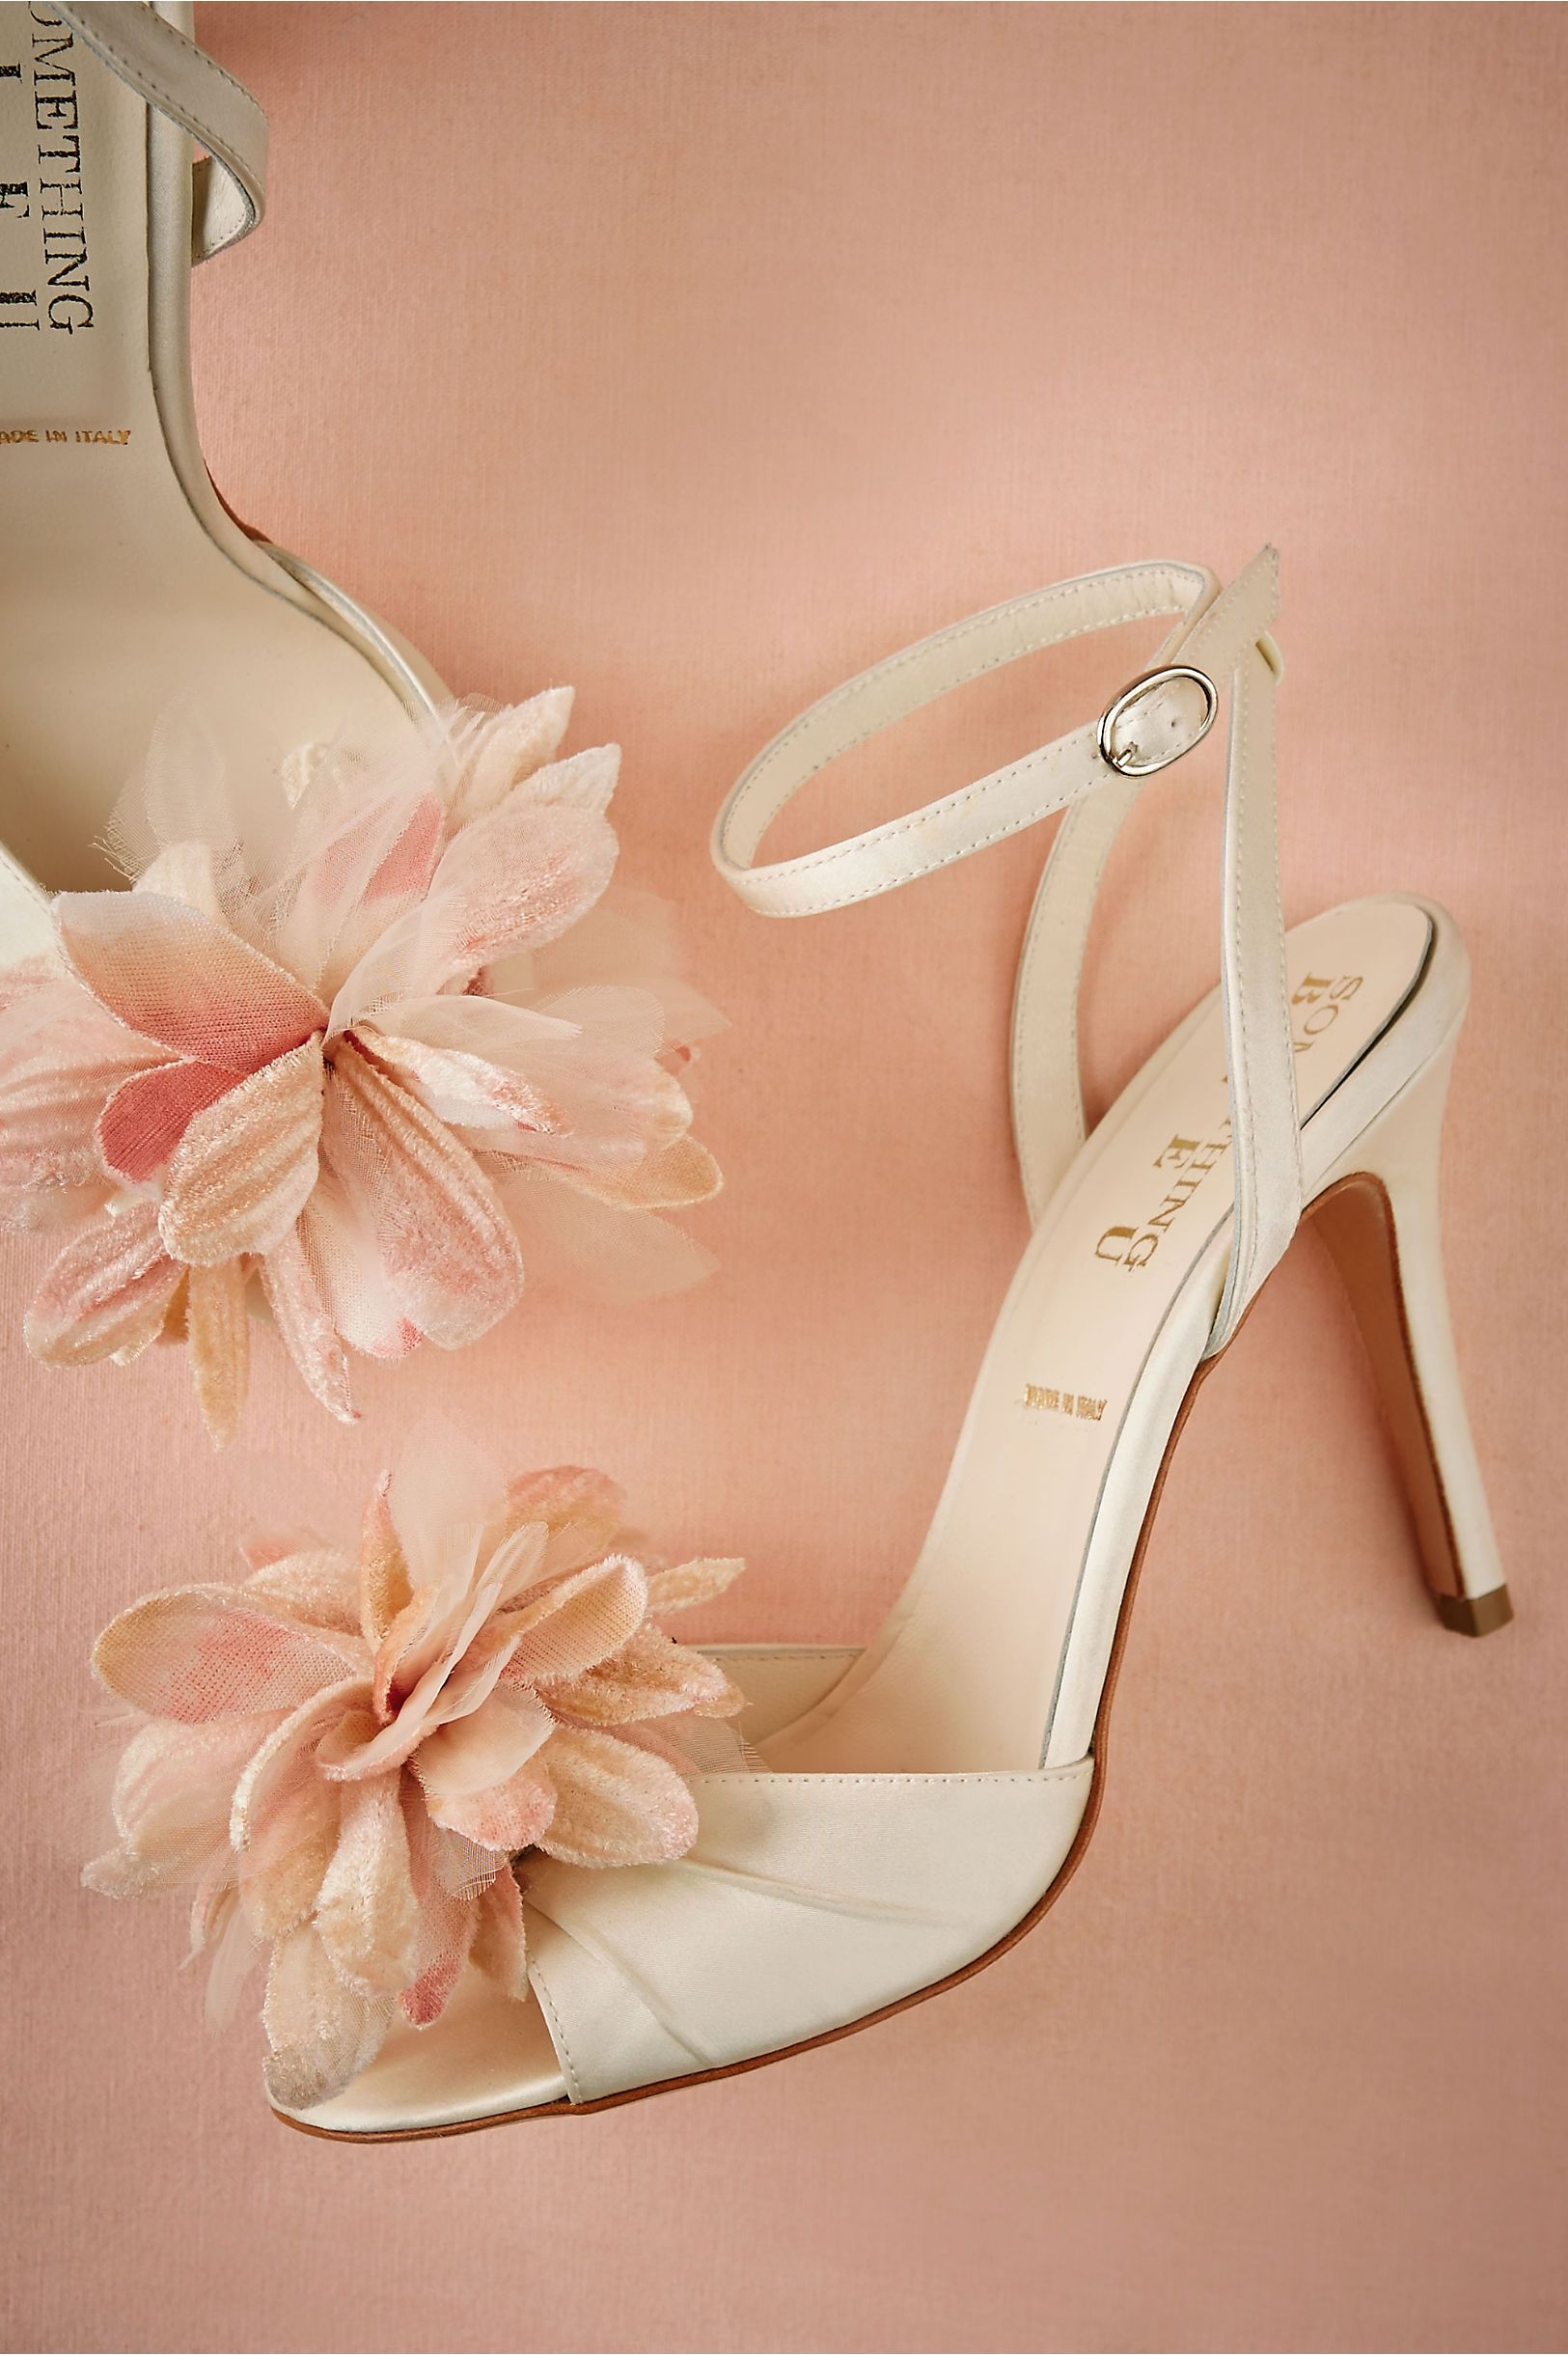 Wish big win big giveaway from anthropologie bhldn saguaro wish big win big giveaway from anthropologie bhldn saguaro heels from bhldn junglespirit Image collections